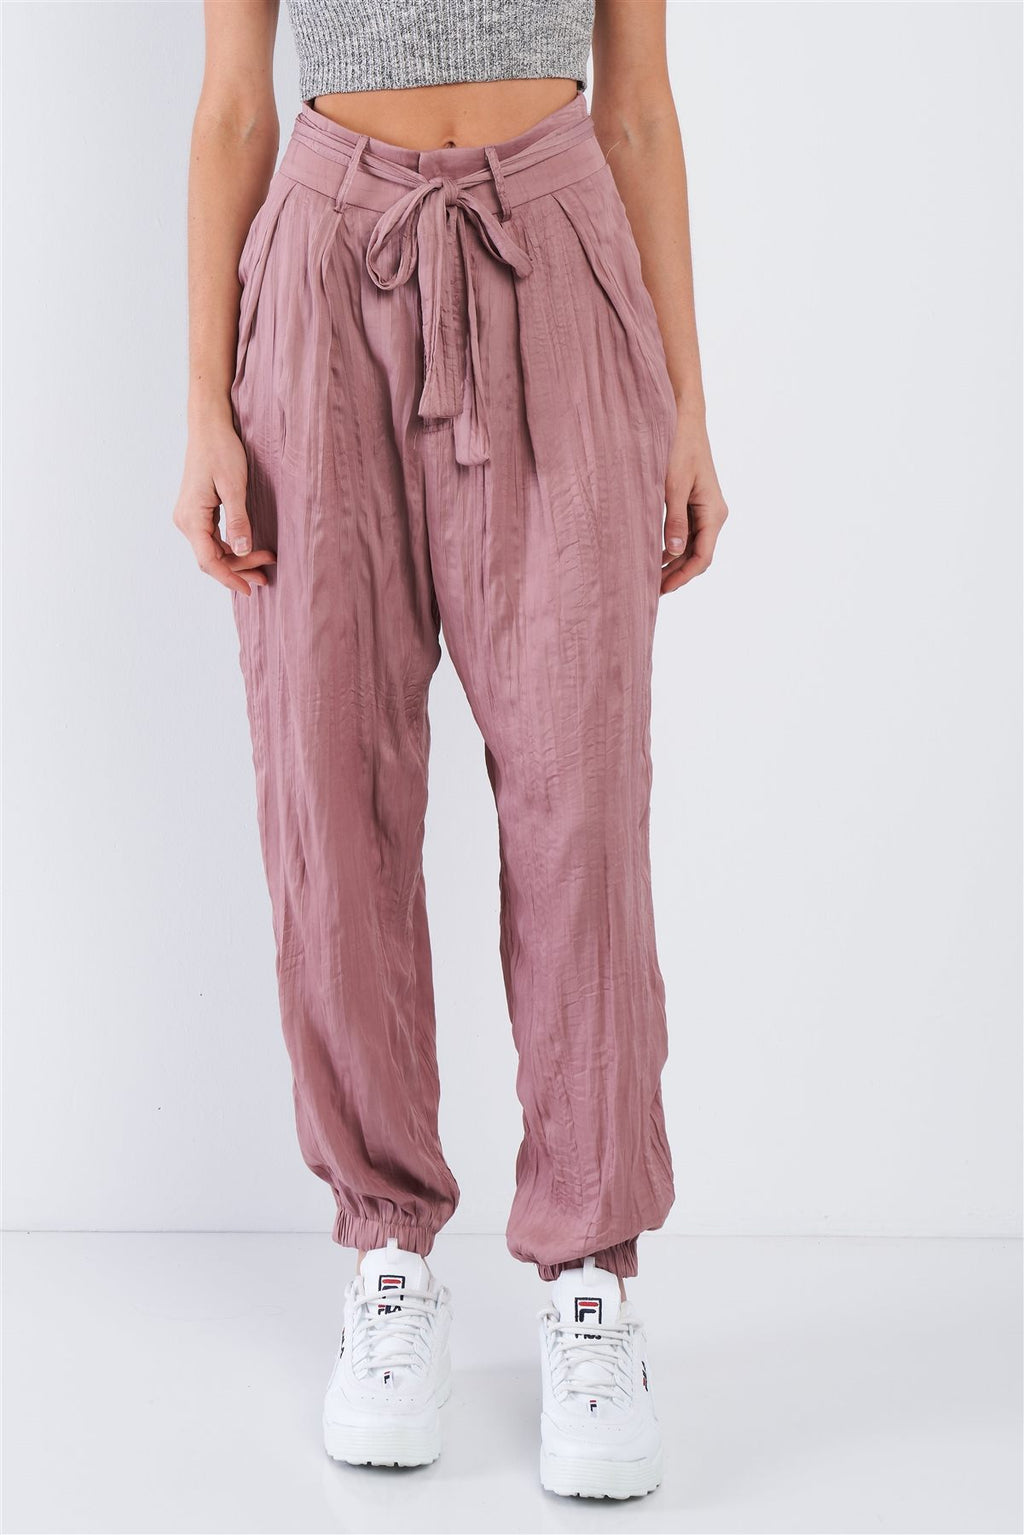 Satin Cinched Ankle Cuff Sash Pants